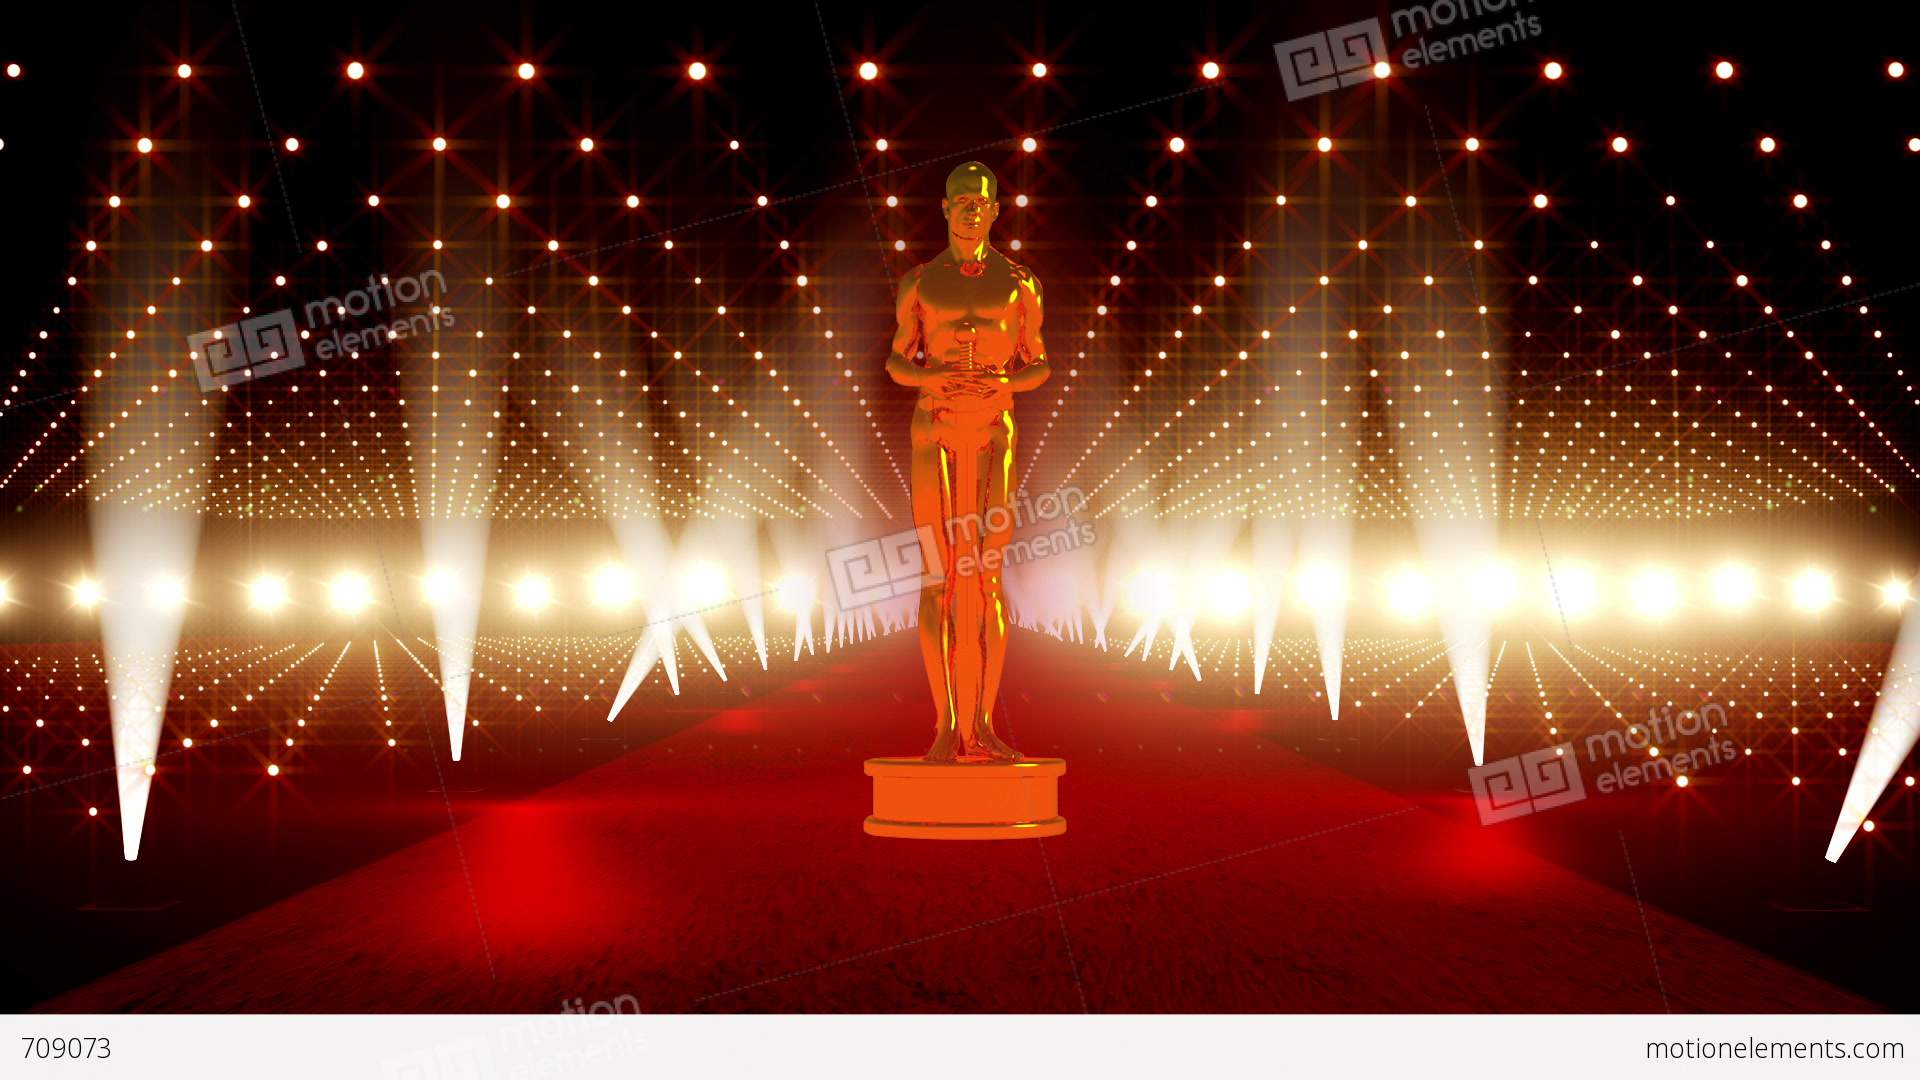 News Pictures Of The Day n 4628713 further Oscars 2017 Inspired Art Deco also 140635 also 2014 09 01 archive likewise On The Red Carpet 03 Award. on academy award stage clip art